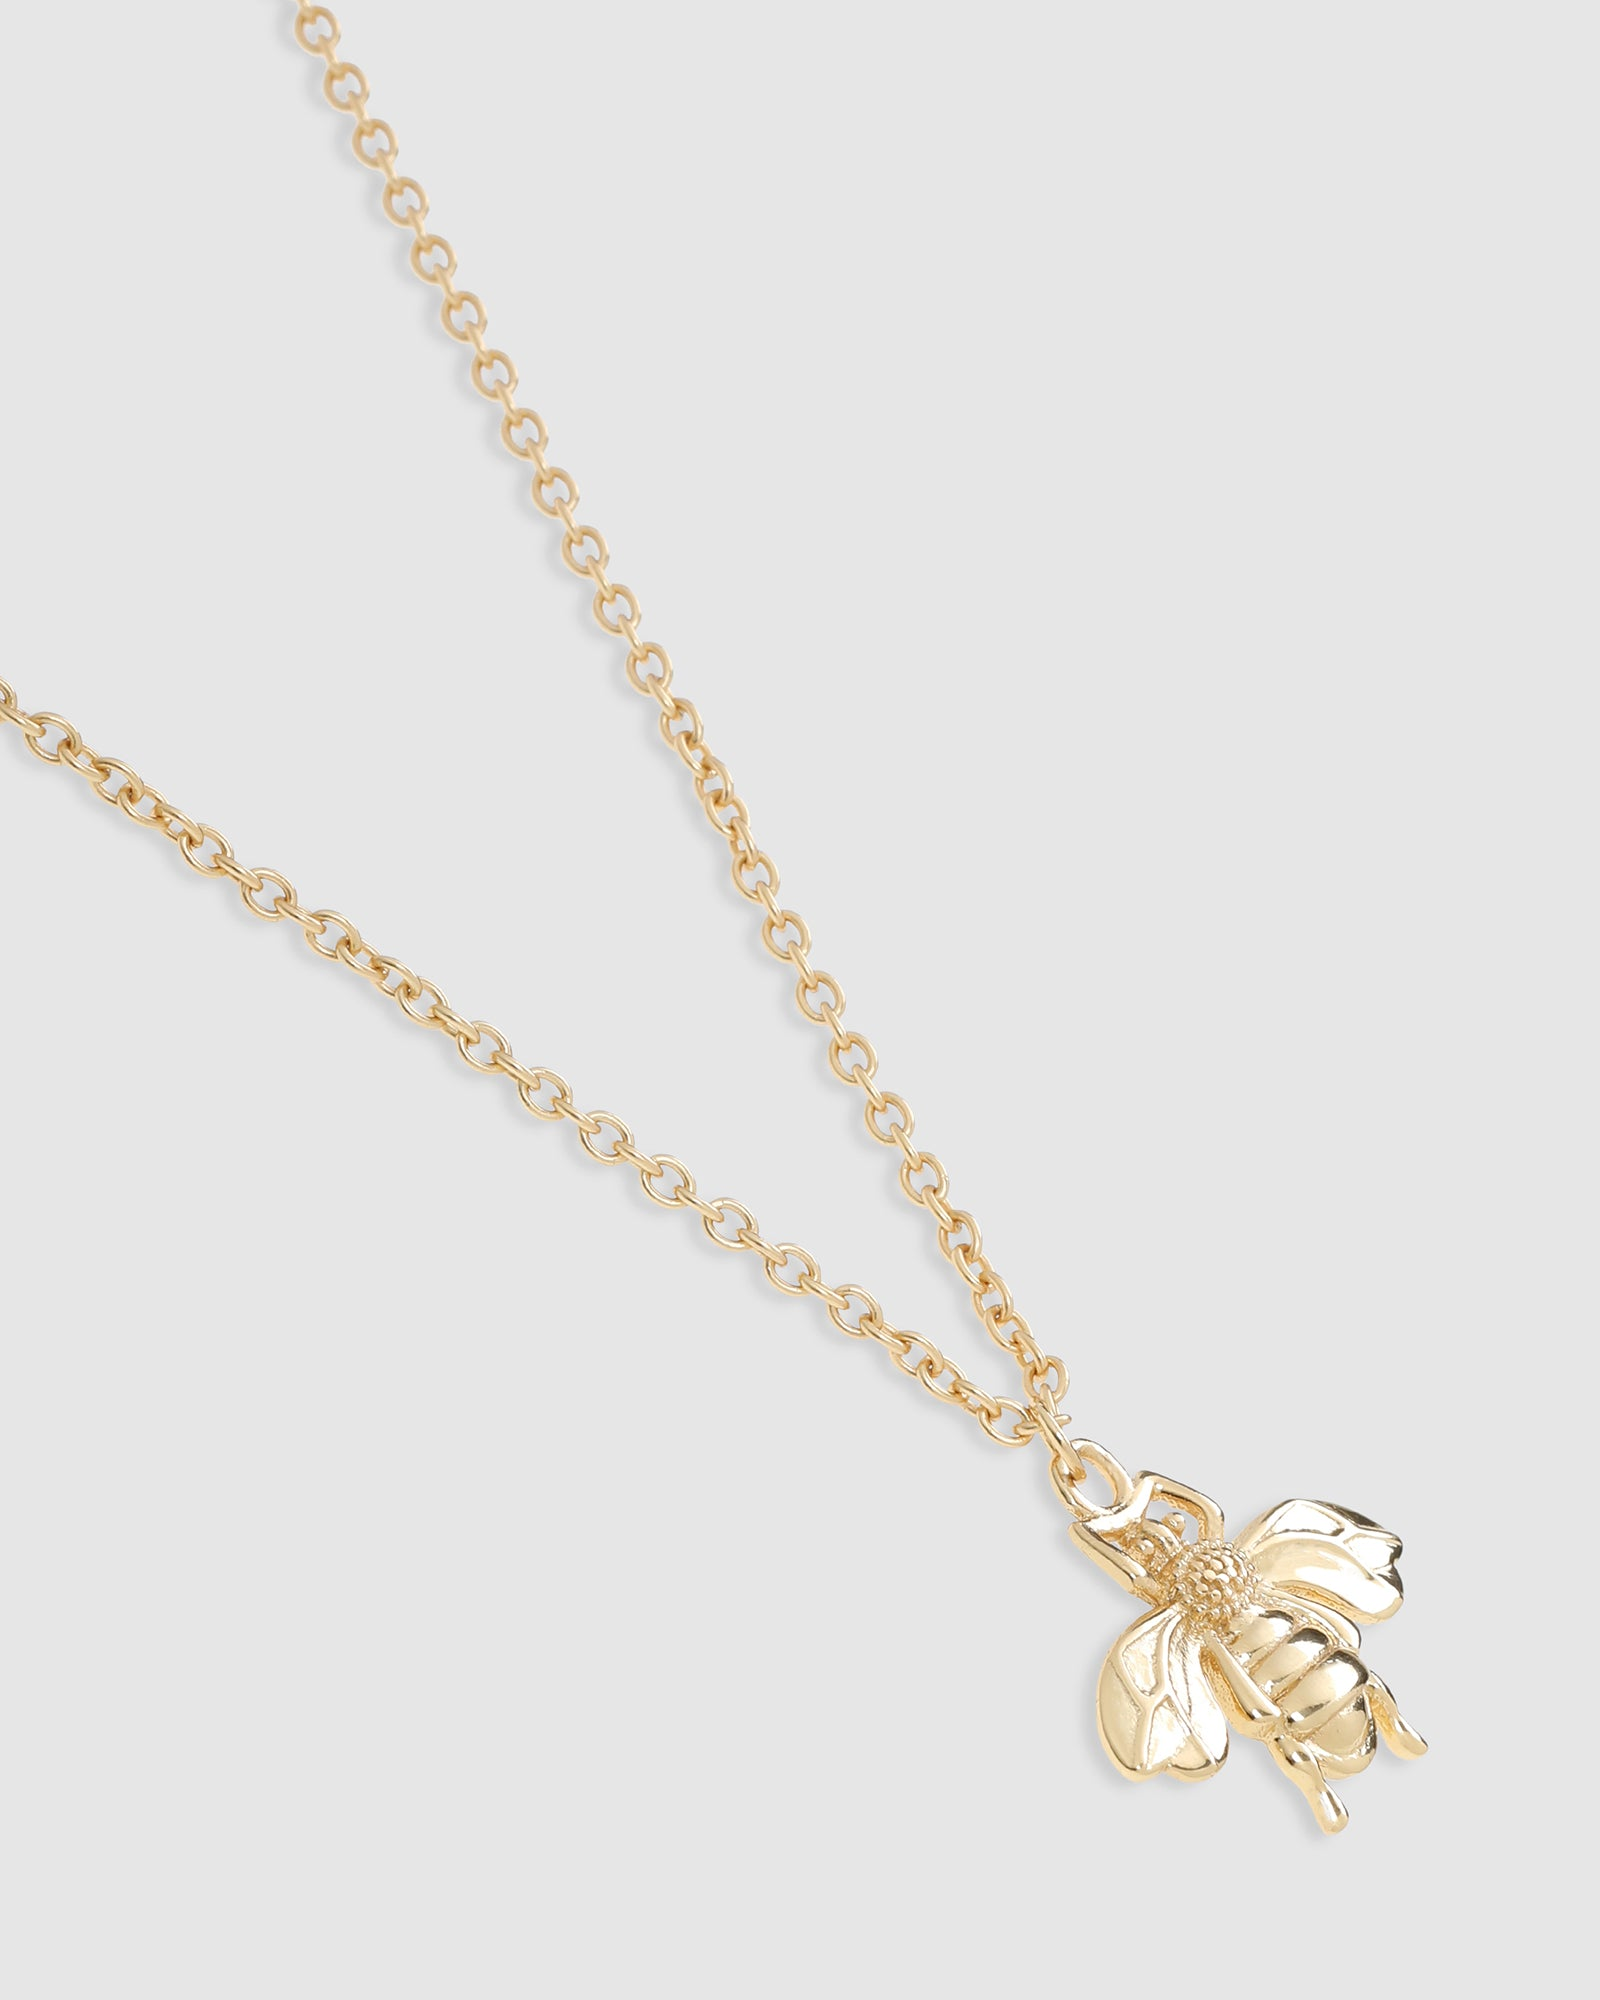 Honey Bee Gold Pendant Necklace - 18k gold